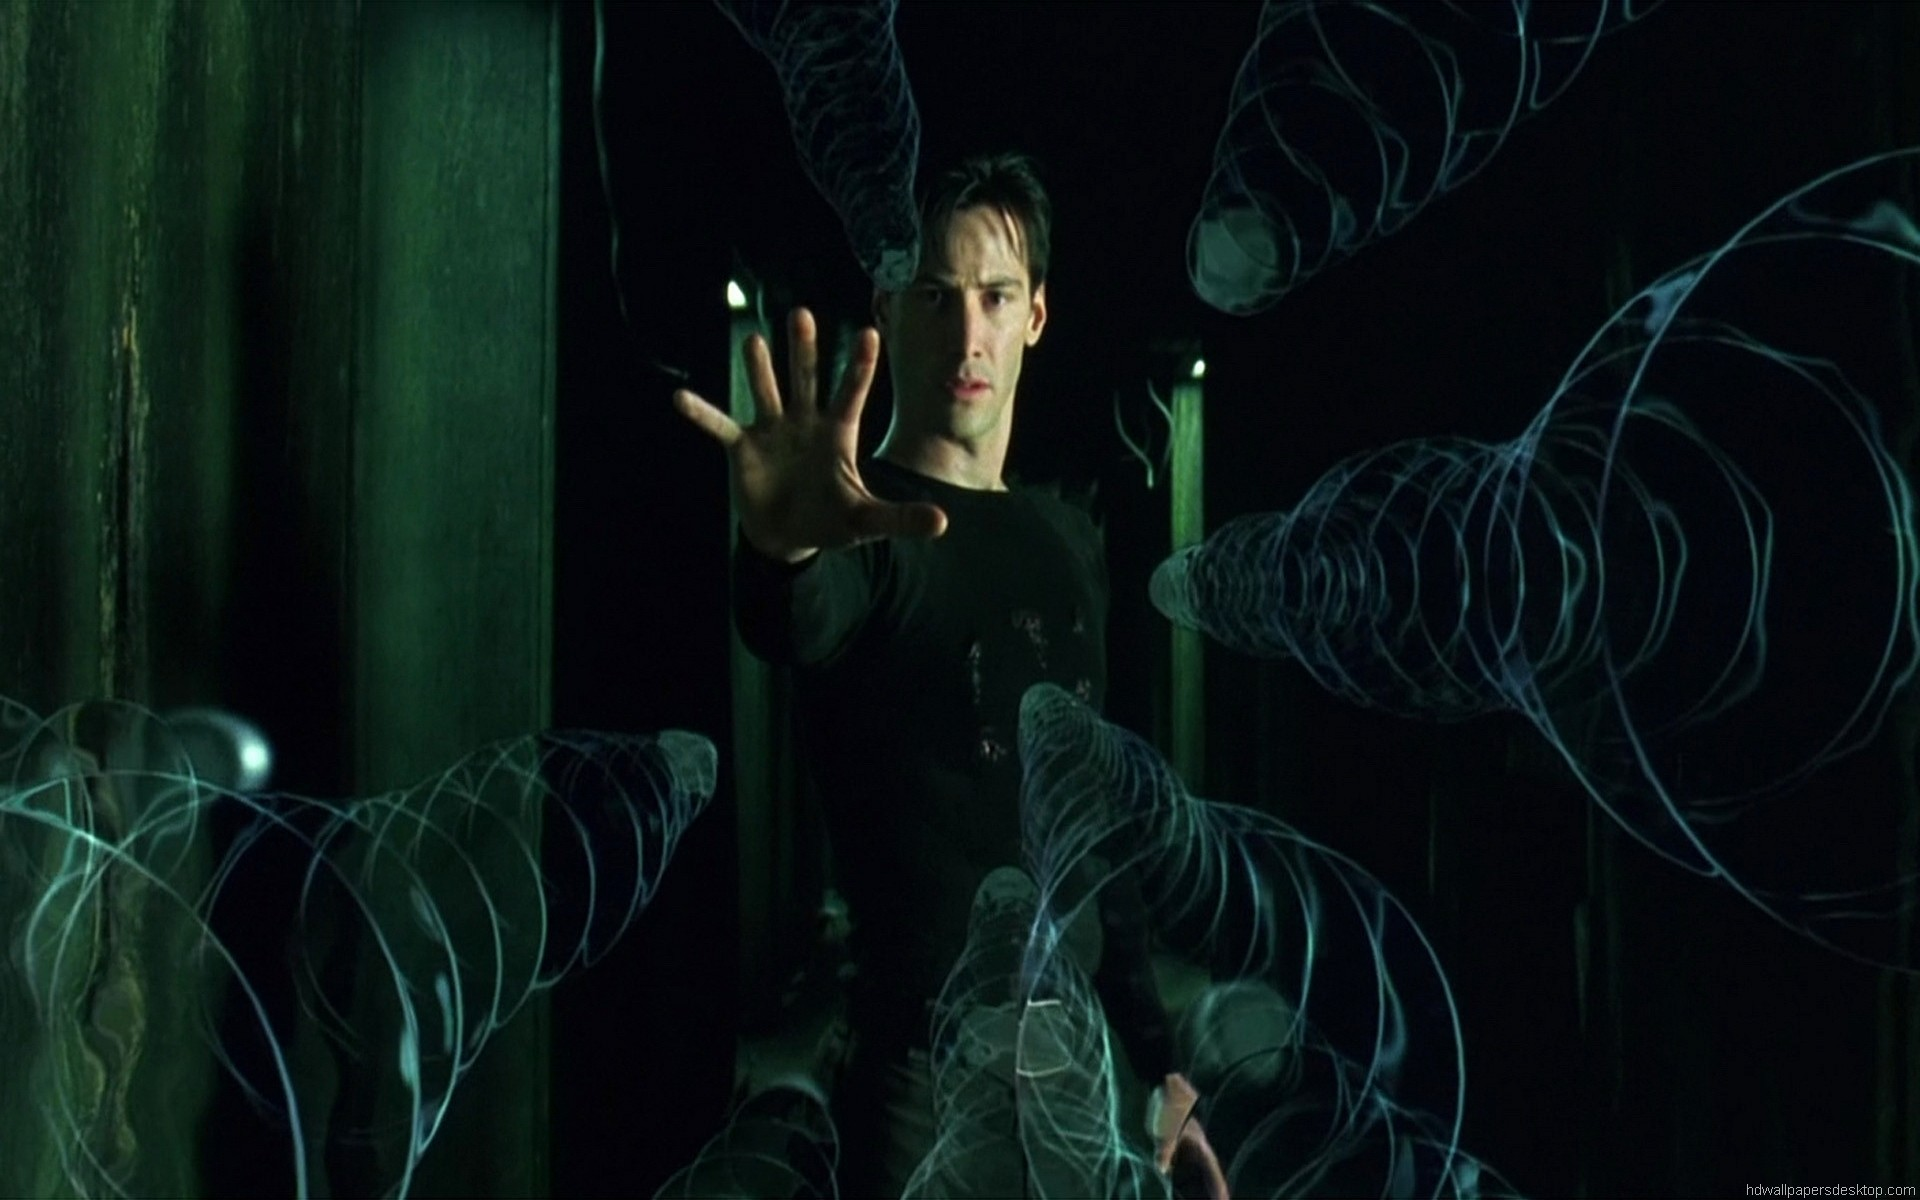 Wallpapers, Movie, The Matrix HD Wallpapers, The Matrix Wallpaper 5